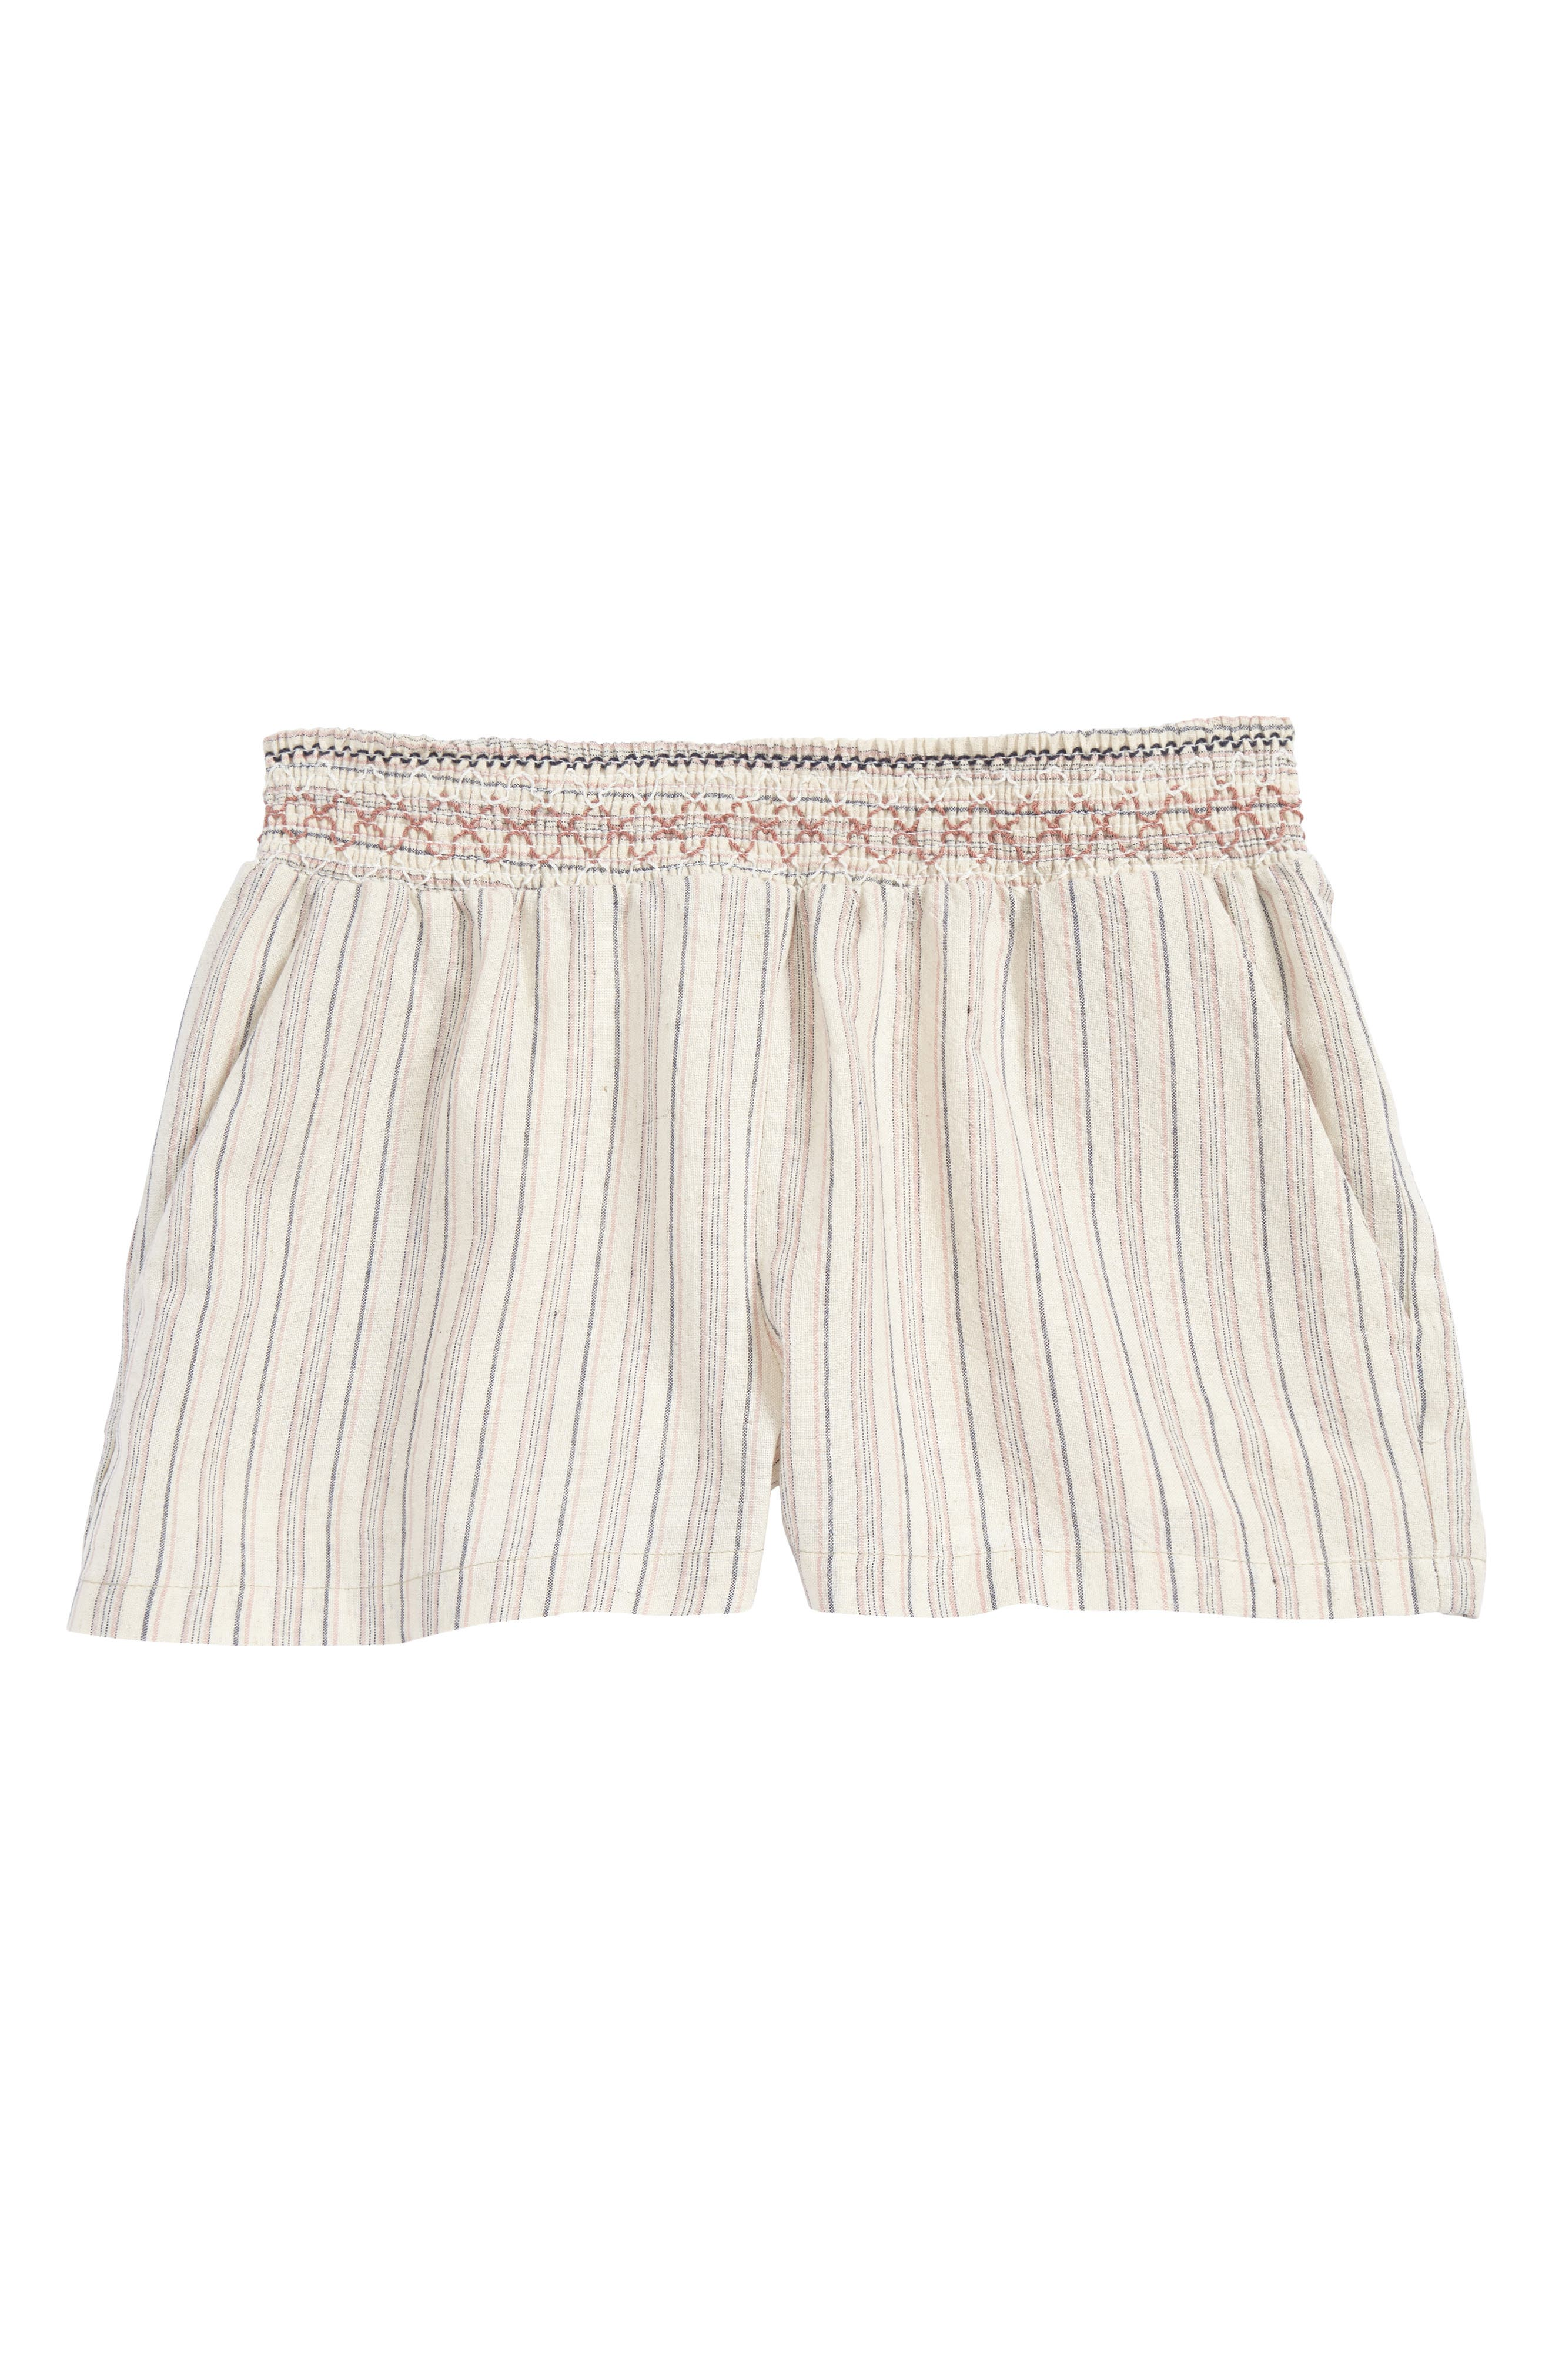 Alternate Image 1 Selected - For All Seasons Stripe Woven Shorts (Big Girls)